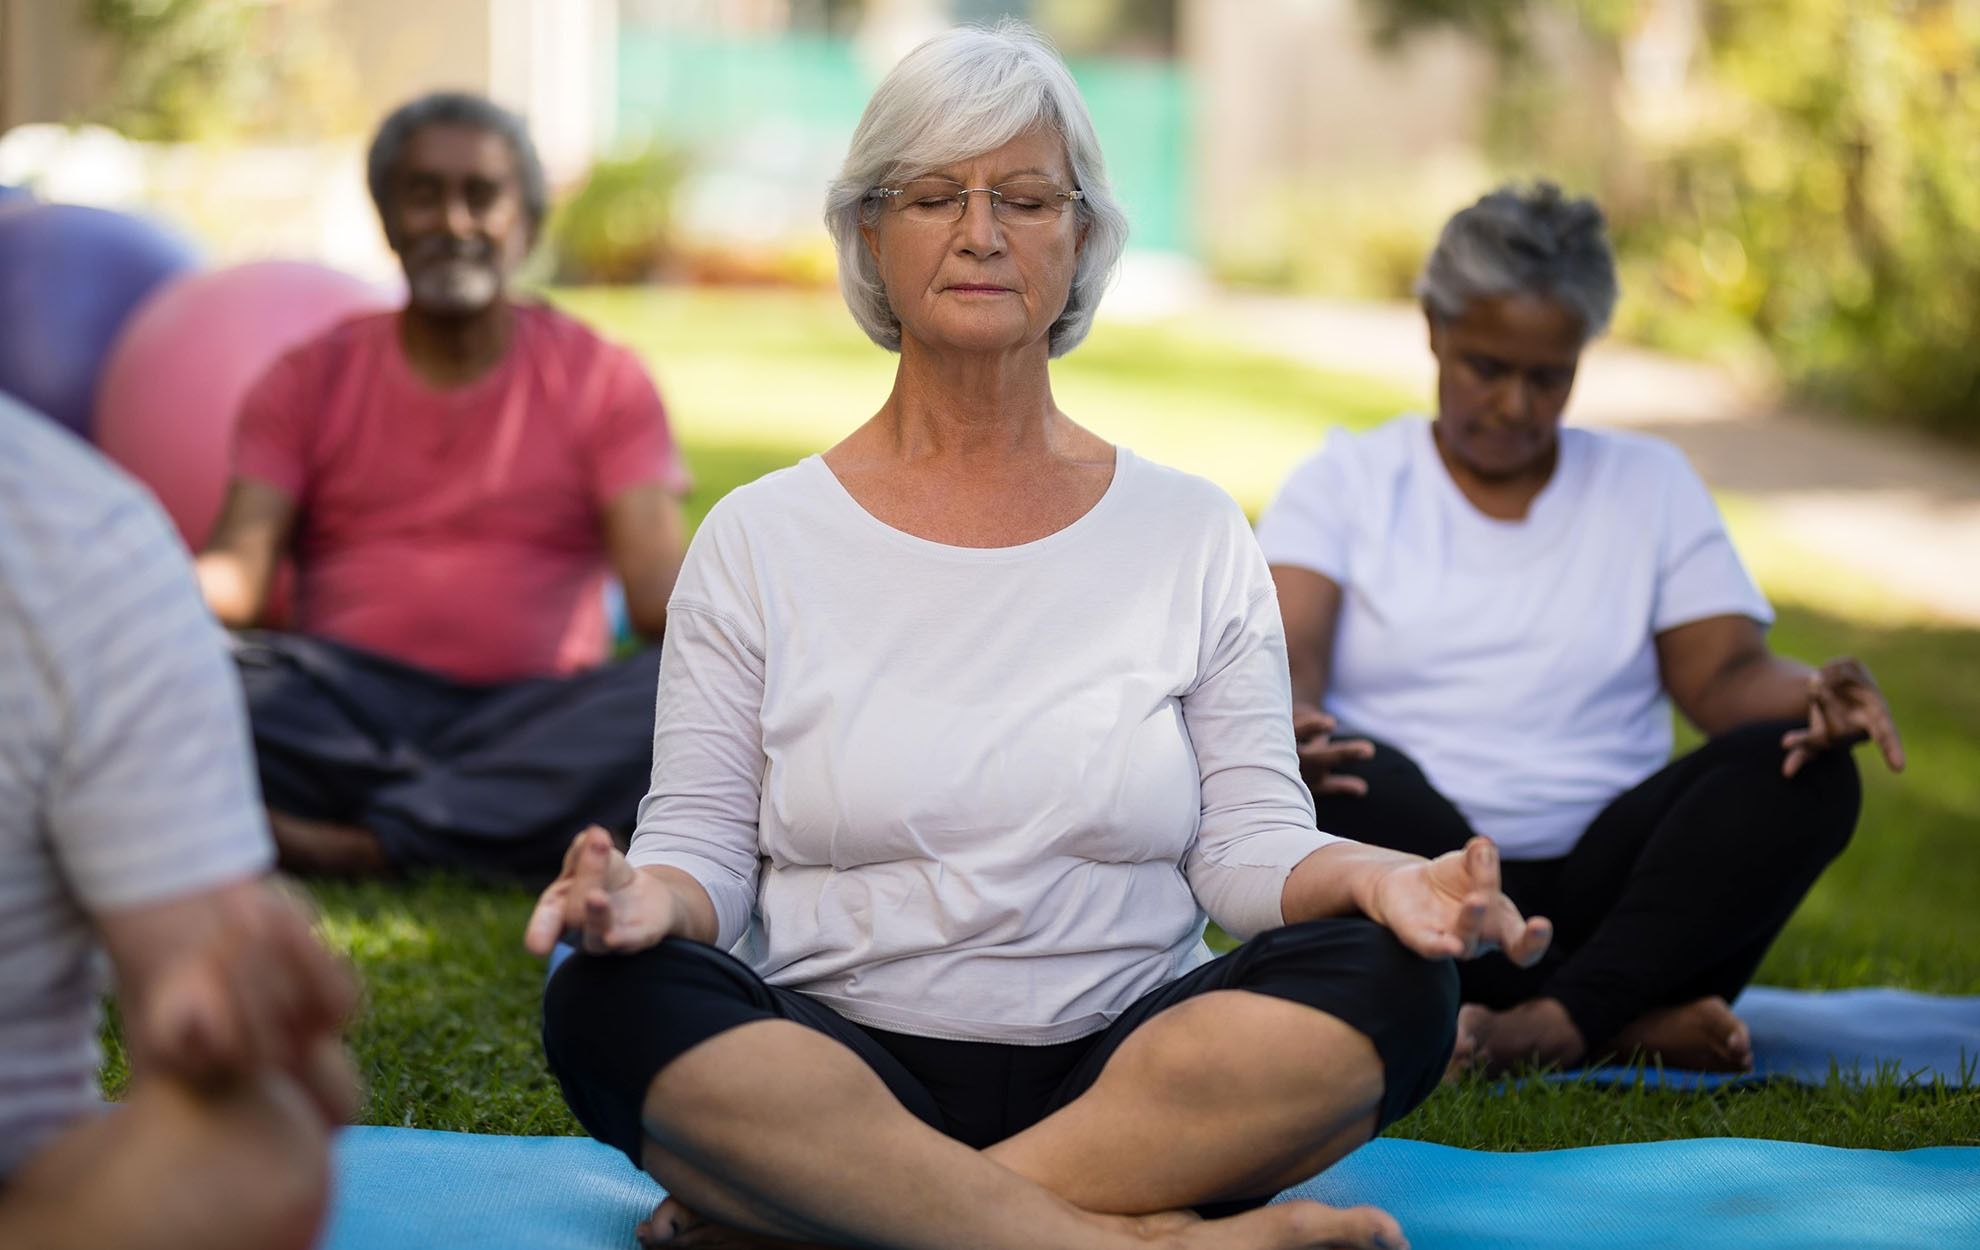 Get Mom Started with a Yoga Class